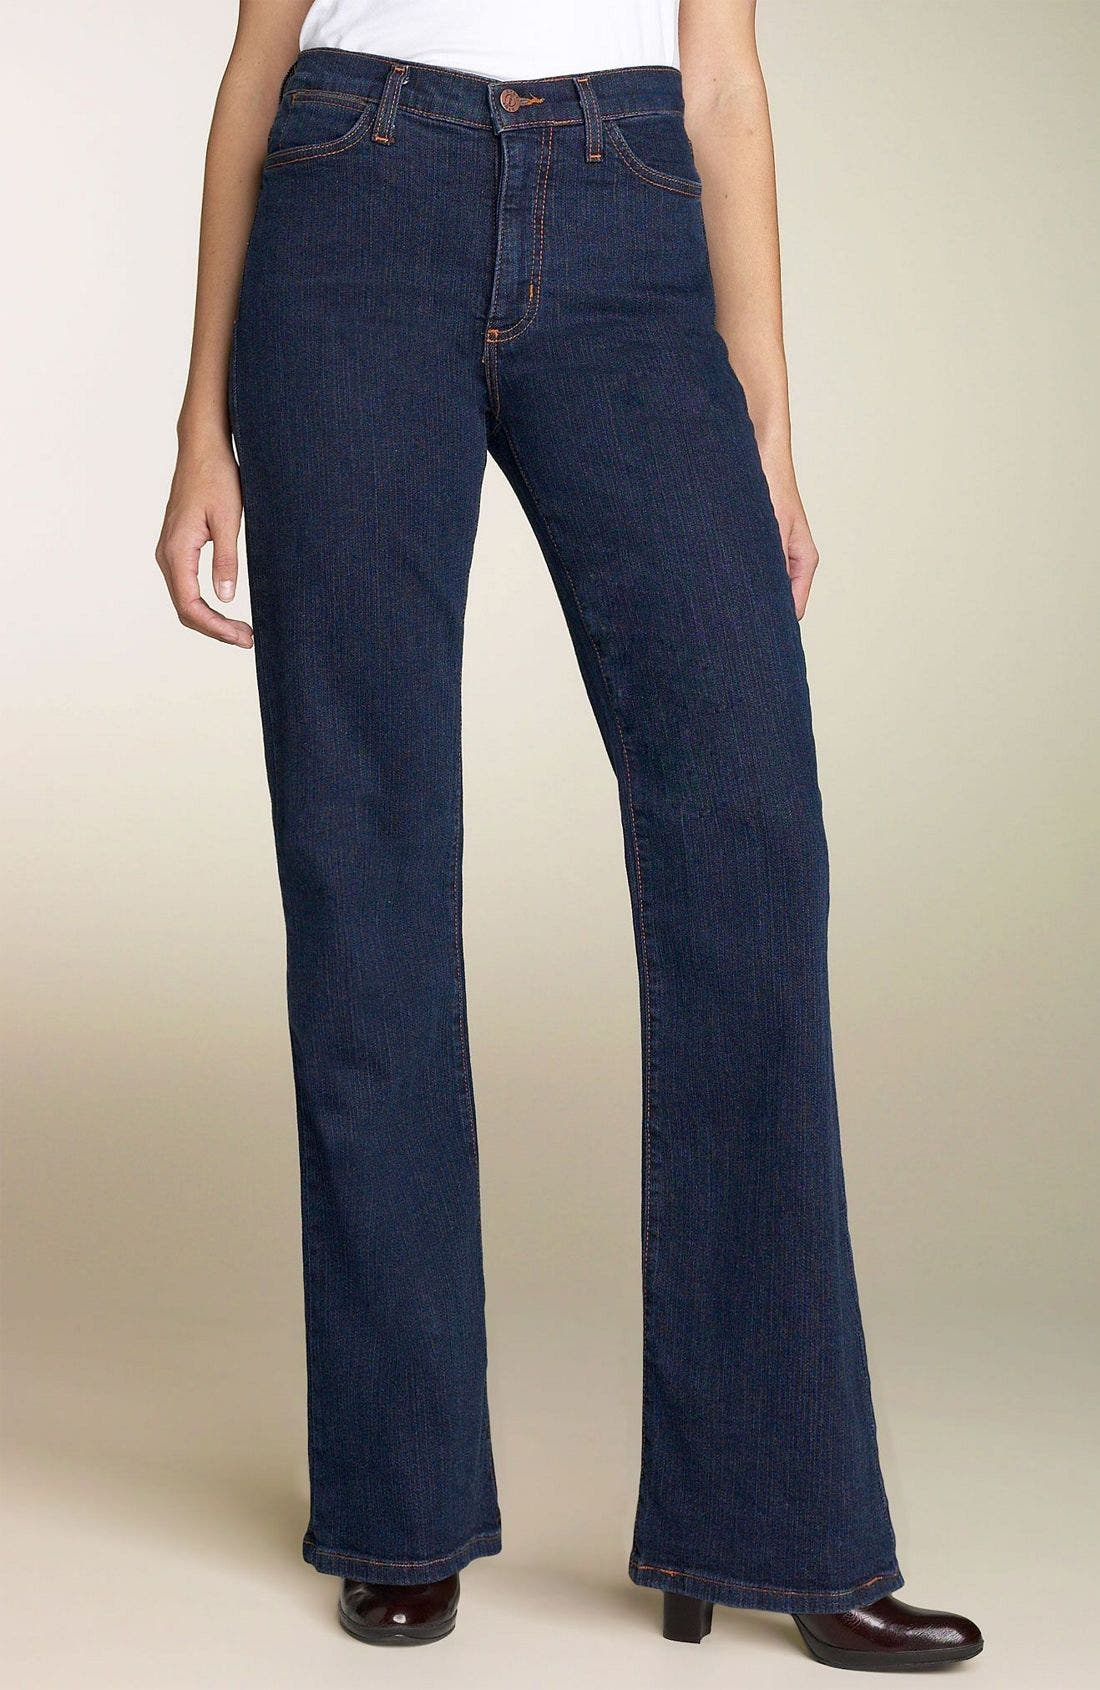 Alternate Image 1 Selected - NYDJ Bootcut Stretch Jeans